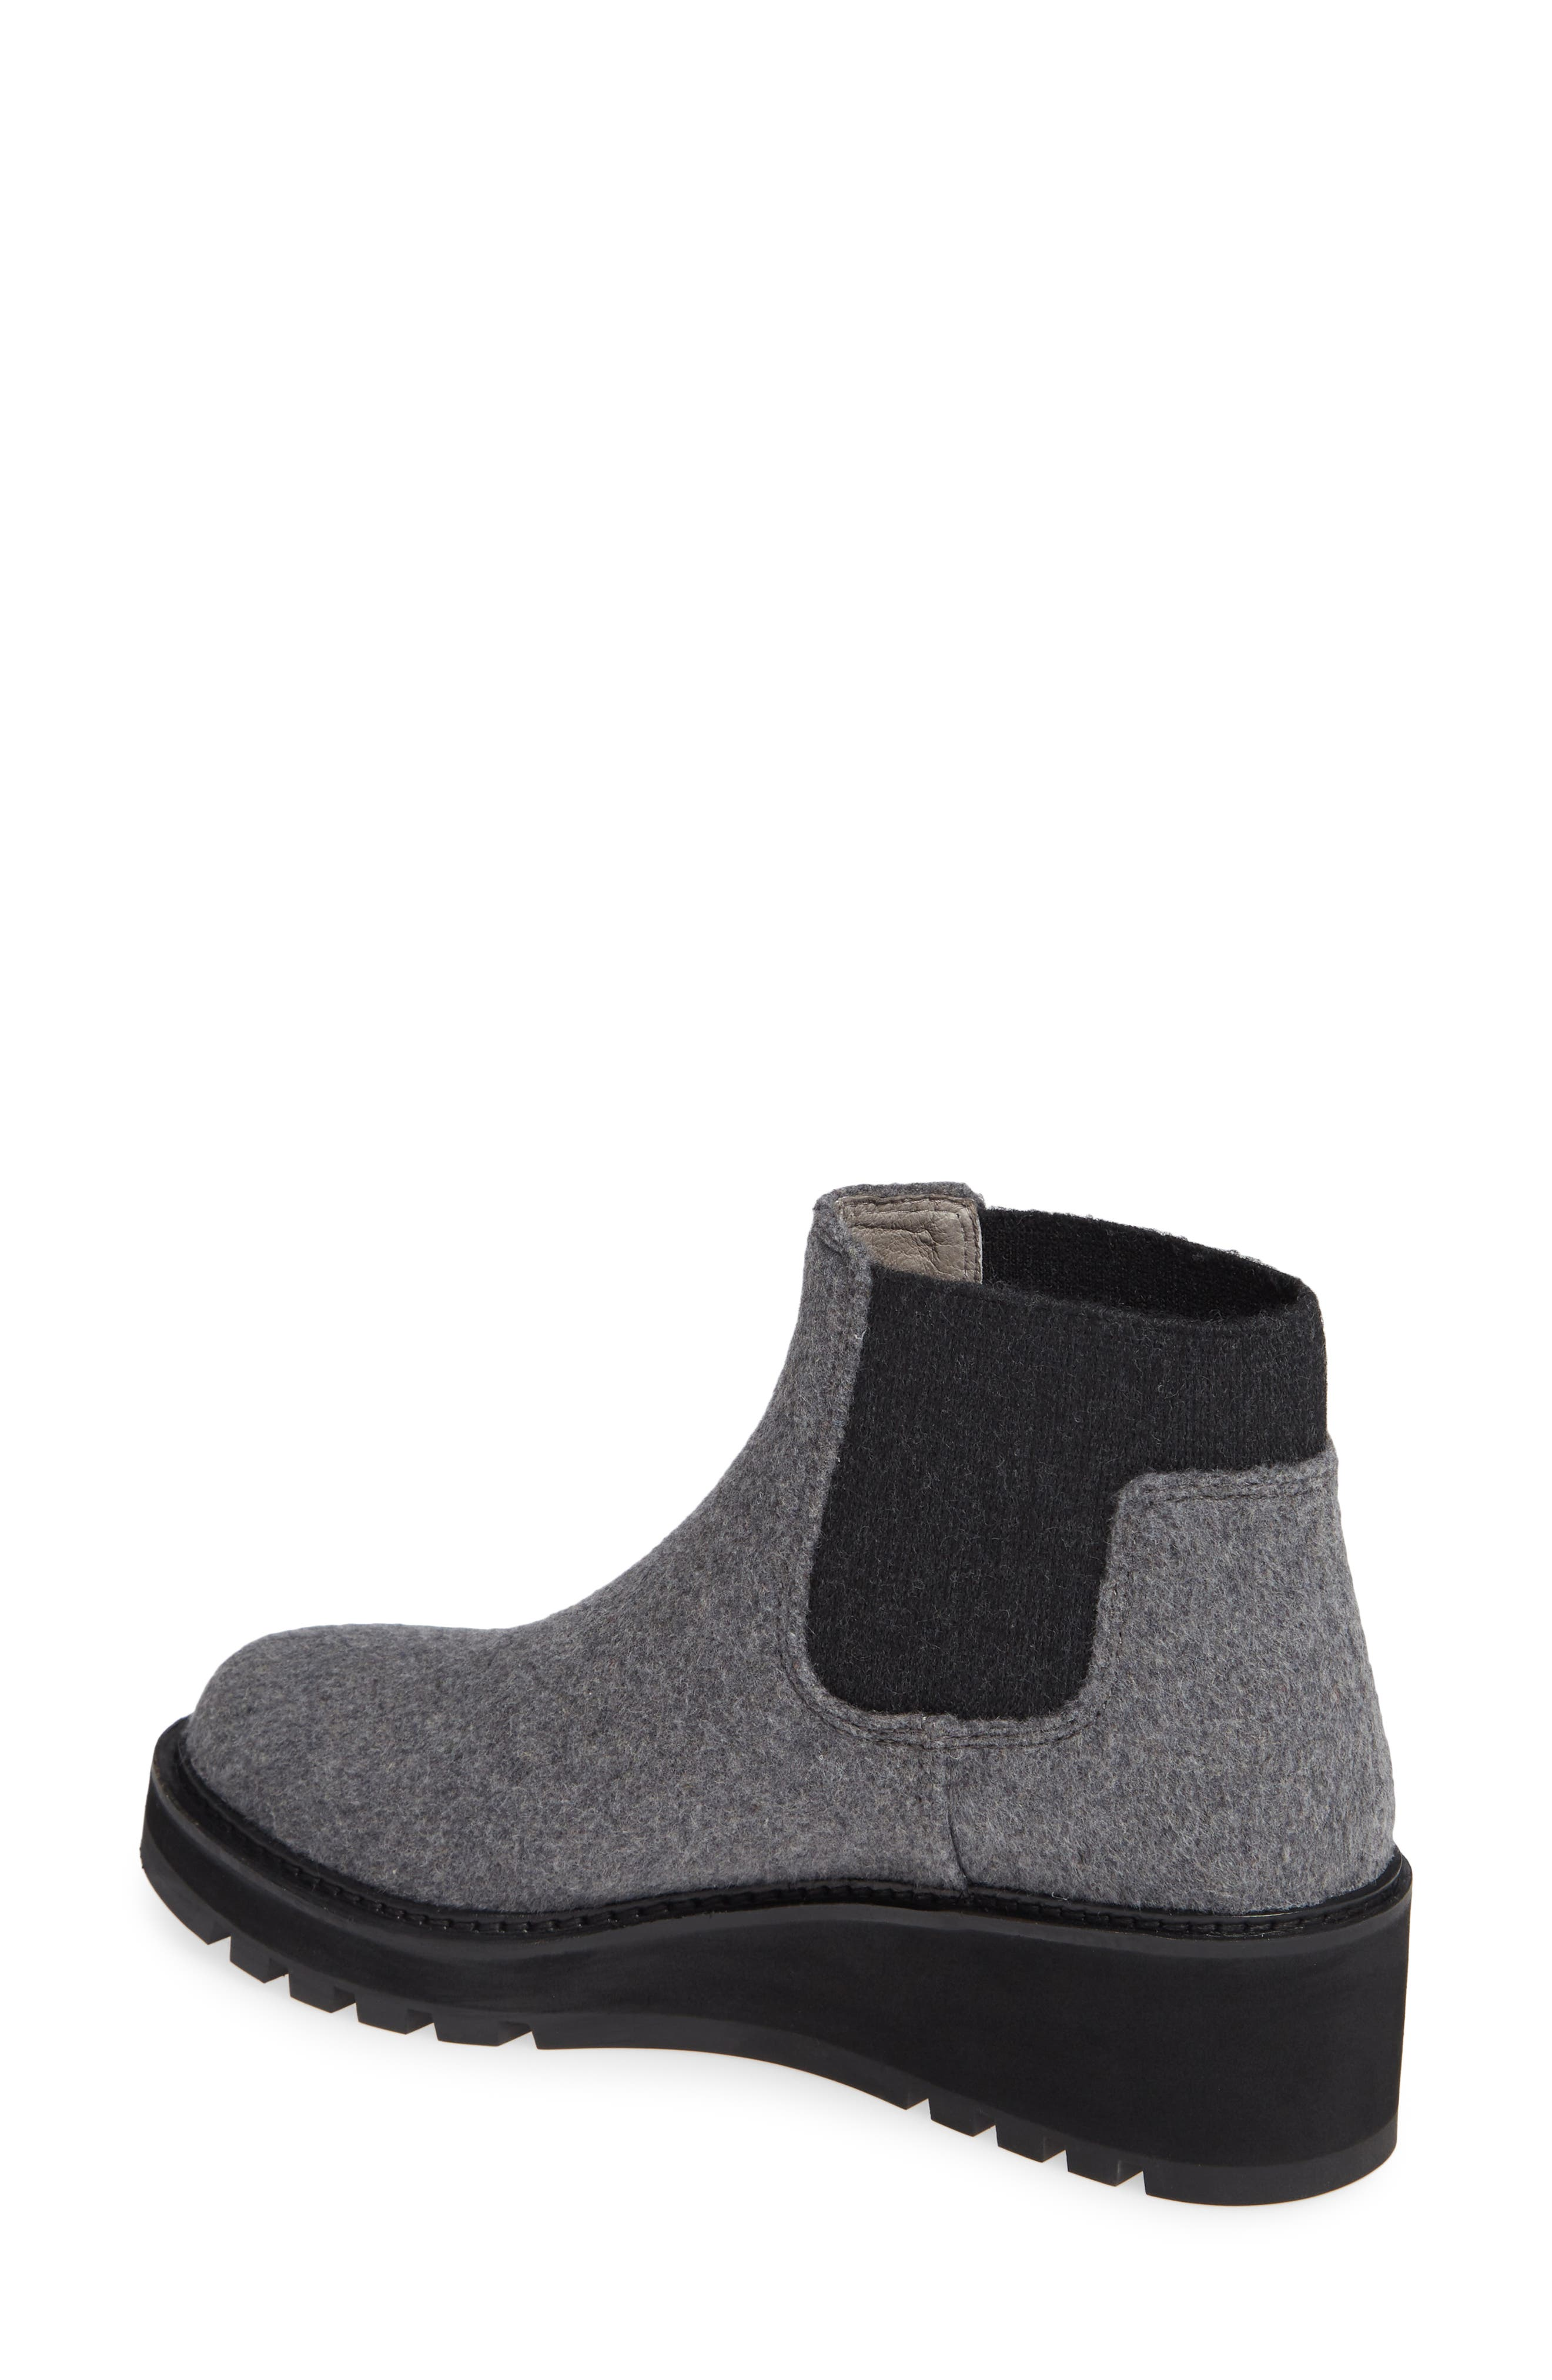 Wedge Chelsea Bootie,                             Alternate thumbnail 2, color,                             CHARCOAL FABRIC